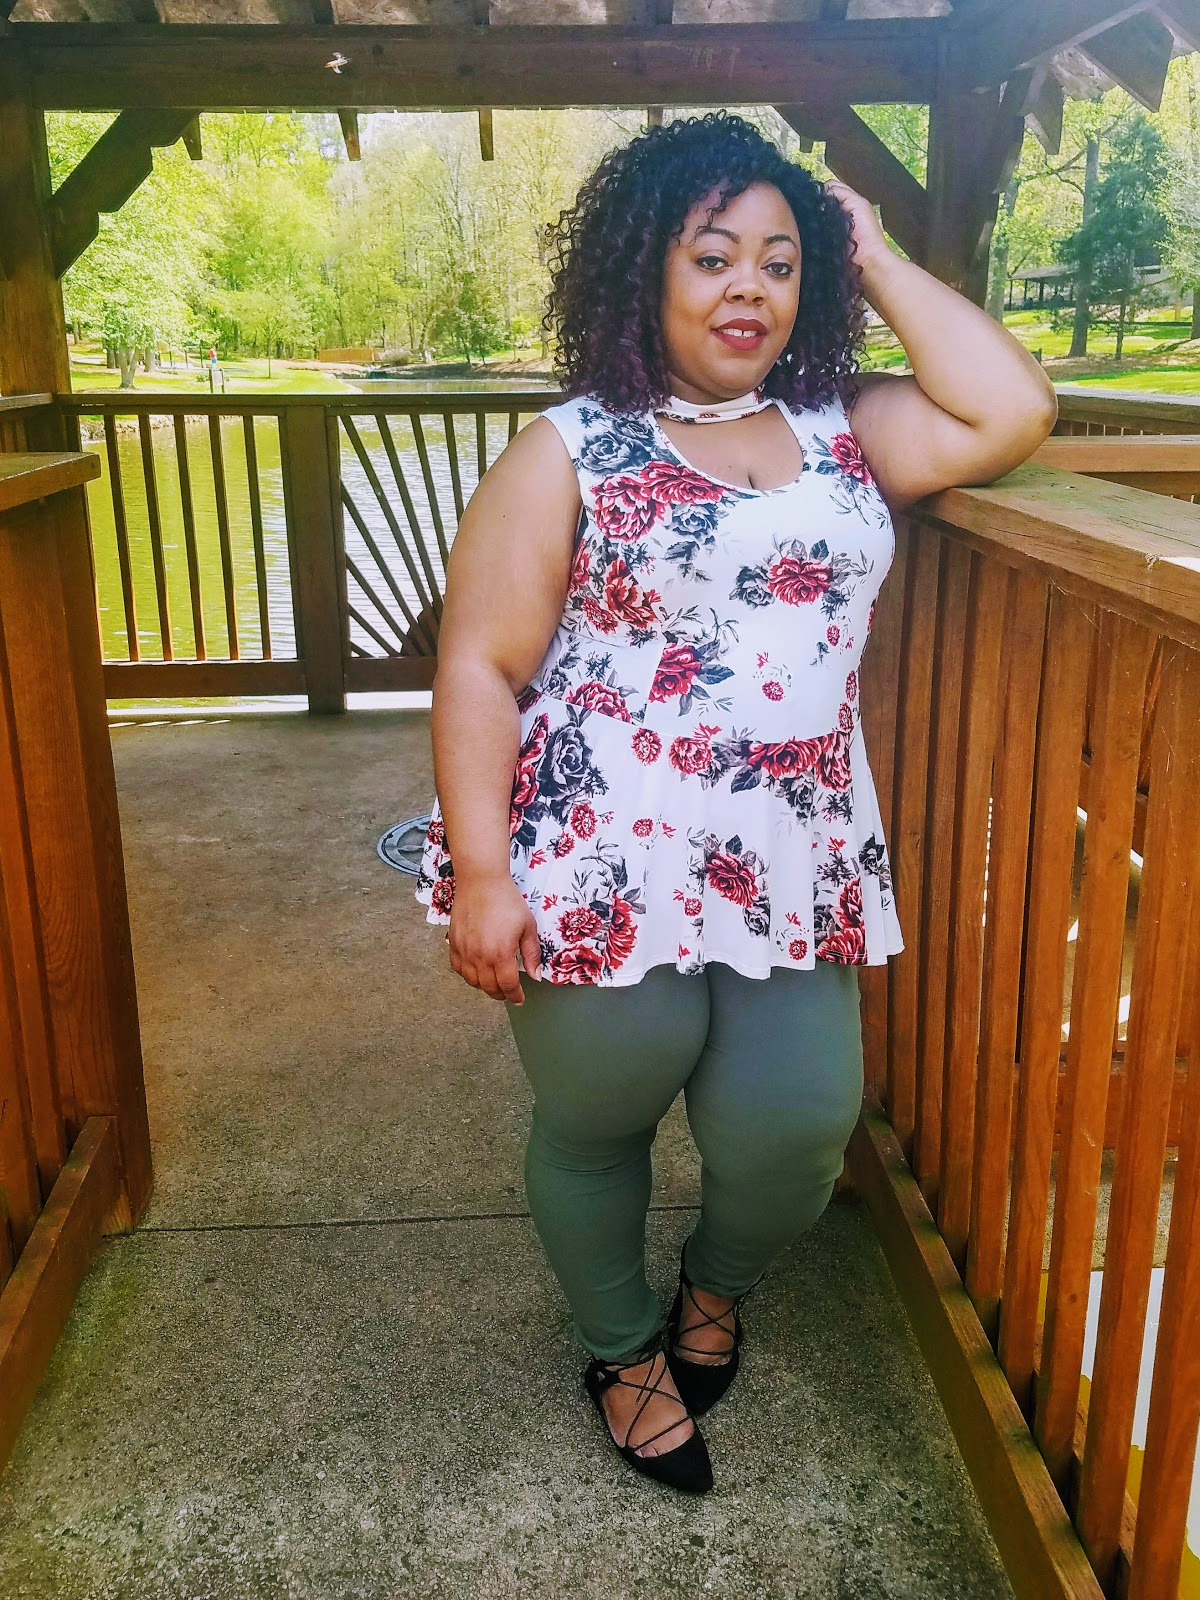 Lane Bryant flats, Rainbowshops jeggings and blouse, natural hairstyle, MAC cosmetics.